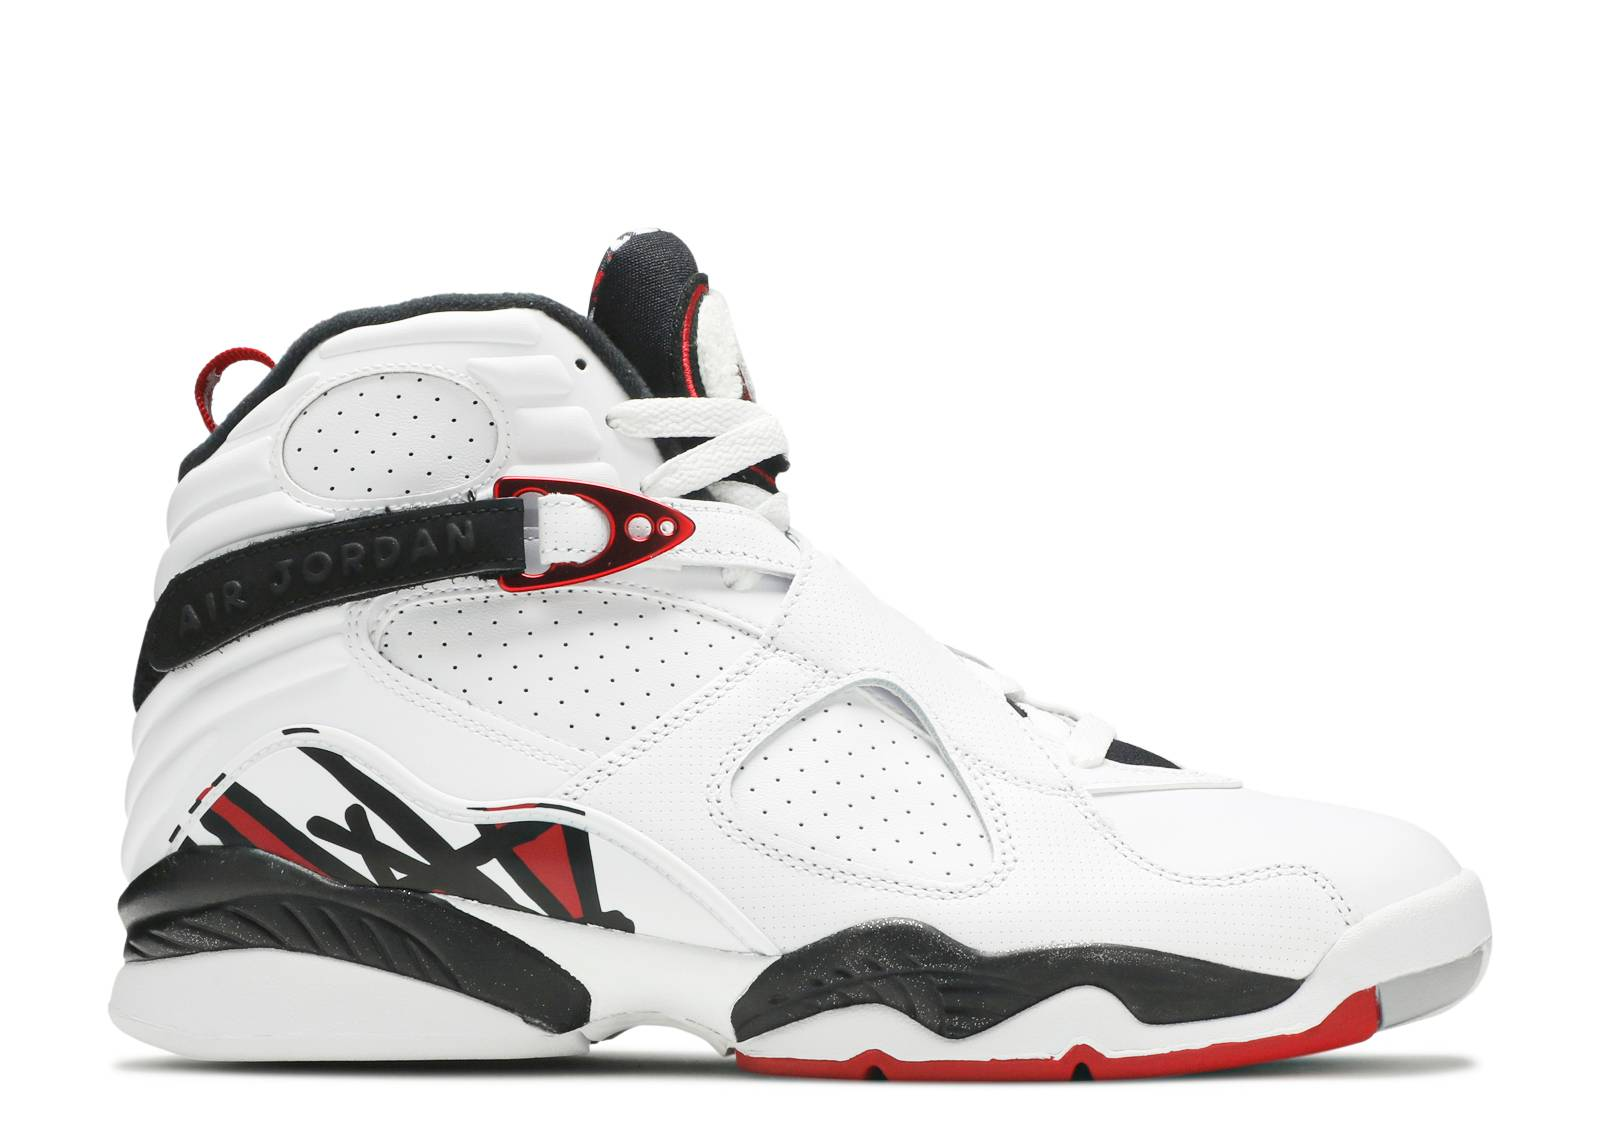 buy online 90e48 00188 Air Jordan 8 (VIII) Shoes - Nike   Flight Club